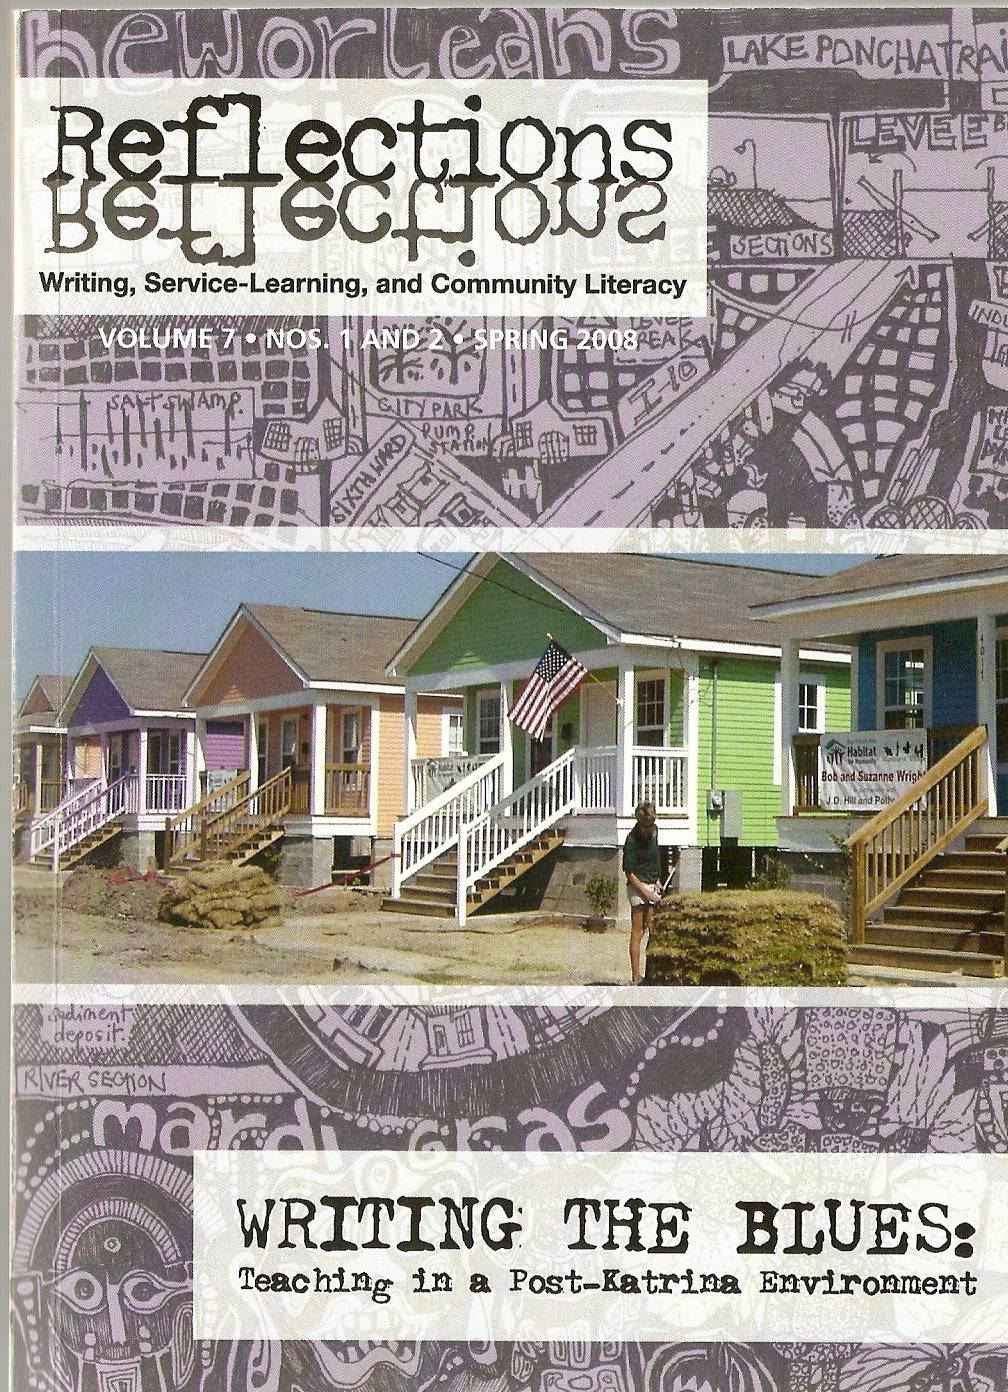 Reflections: Defining Community/Building Theories, Editorial by Steve Parks